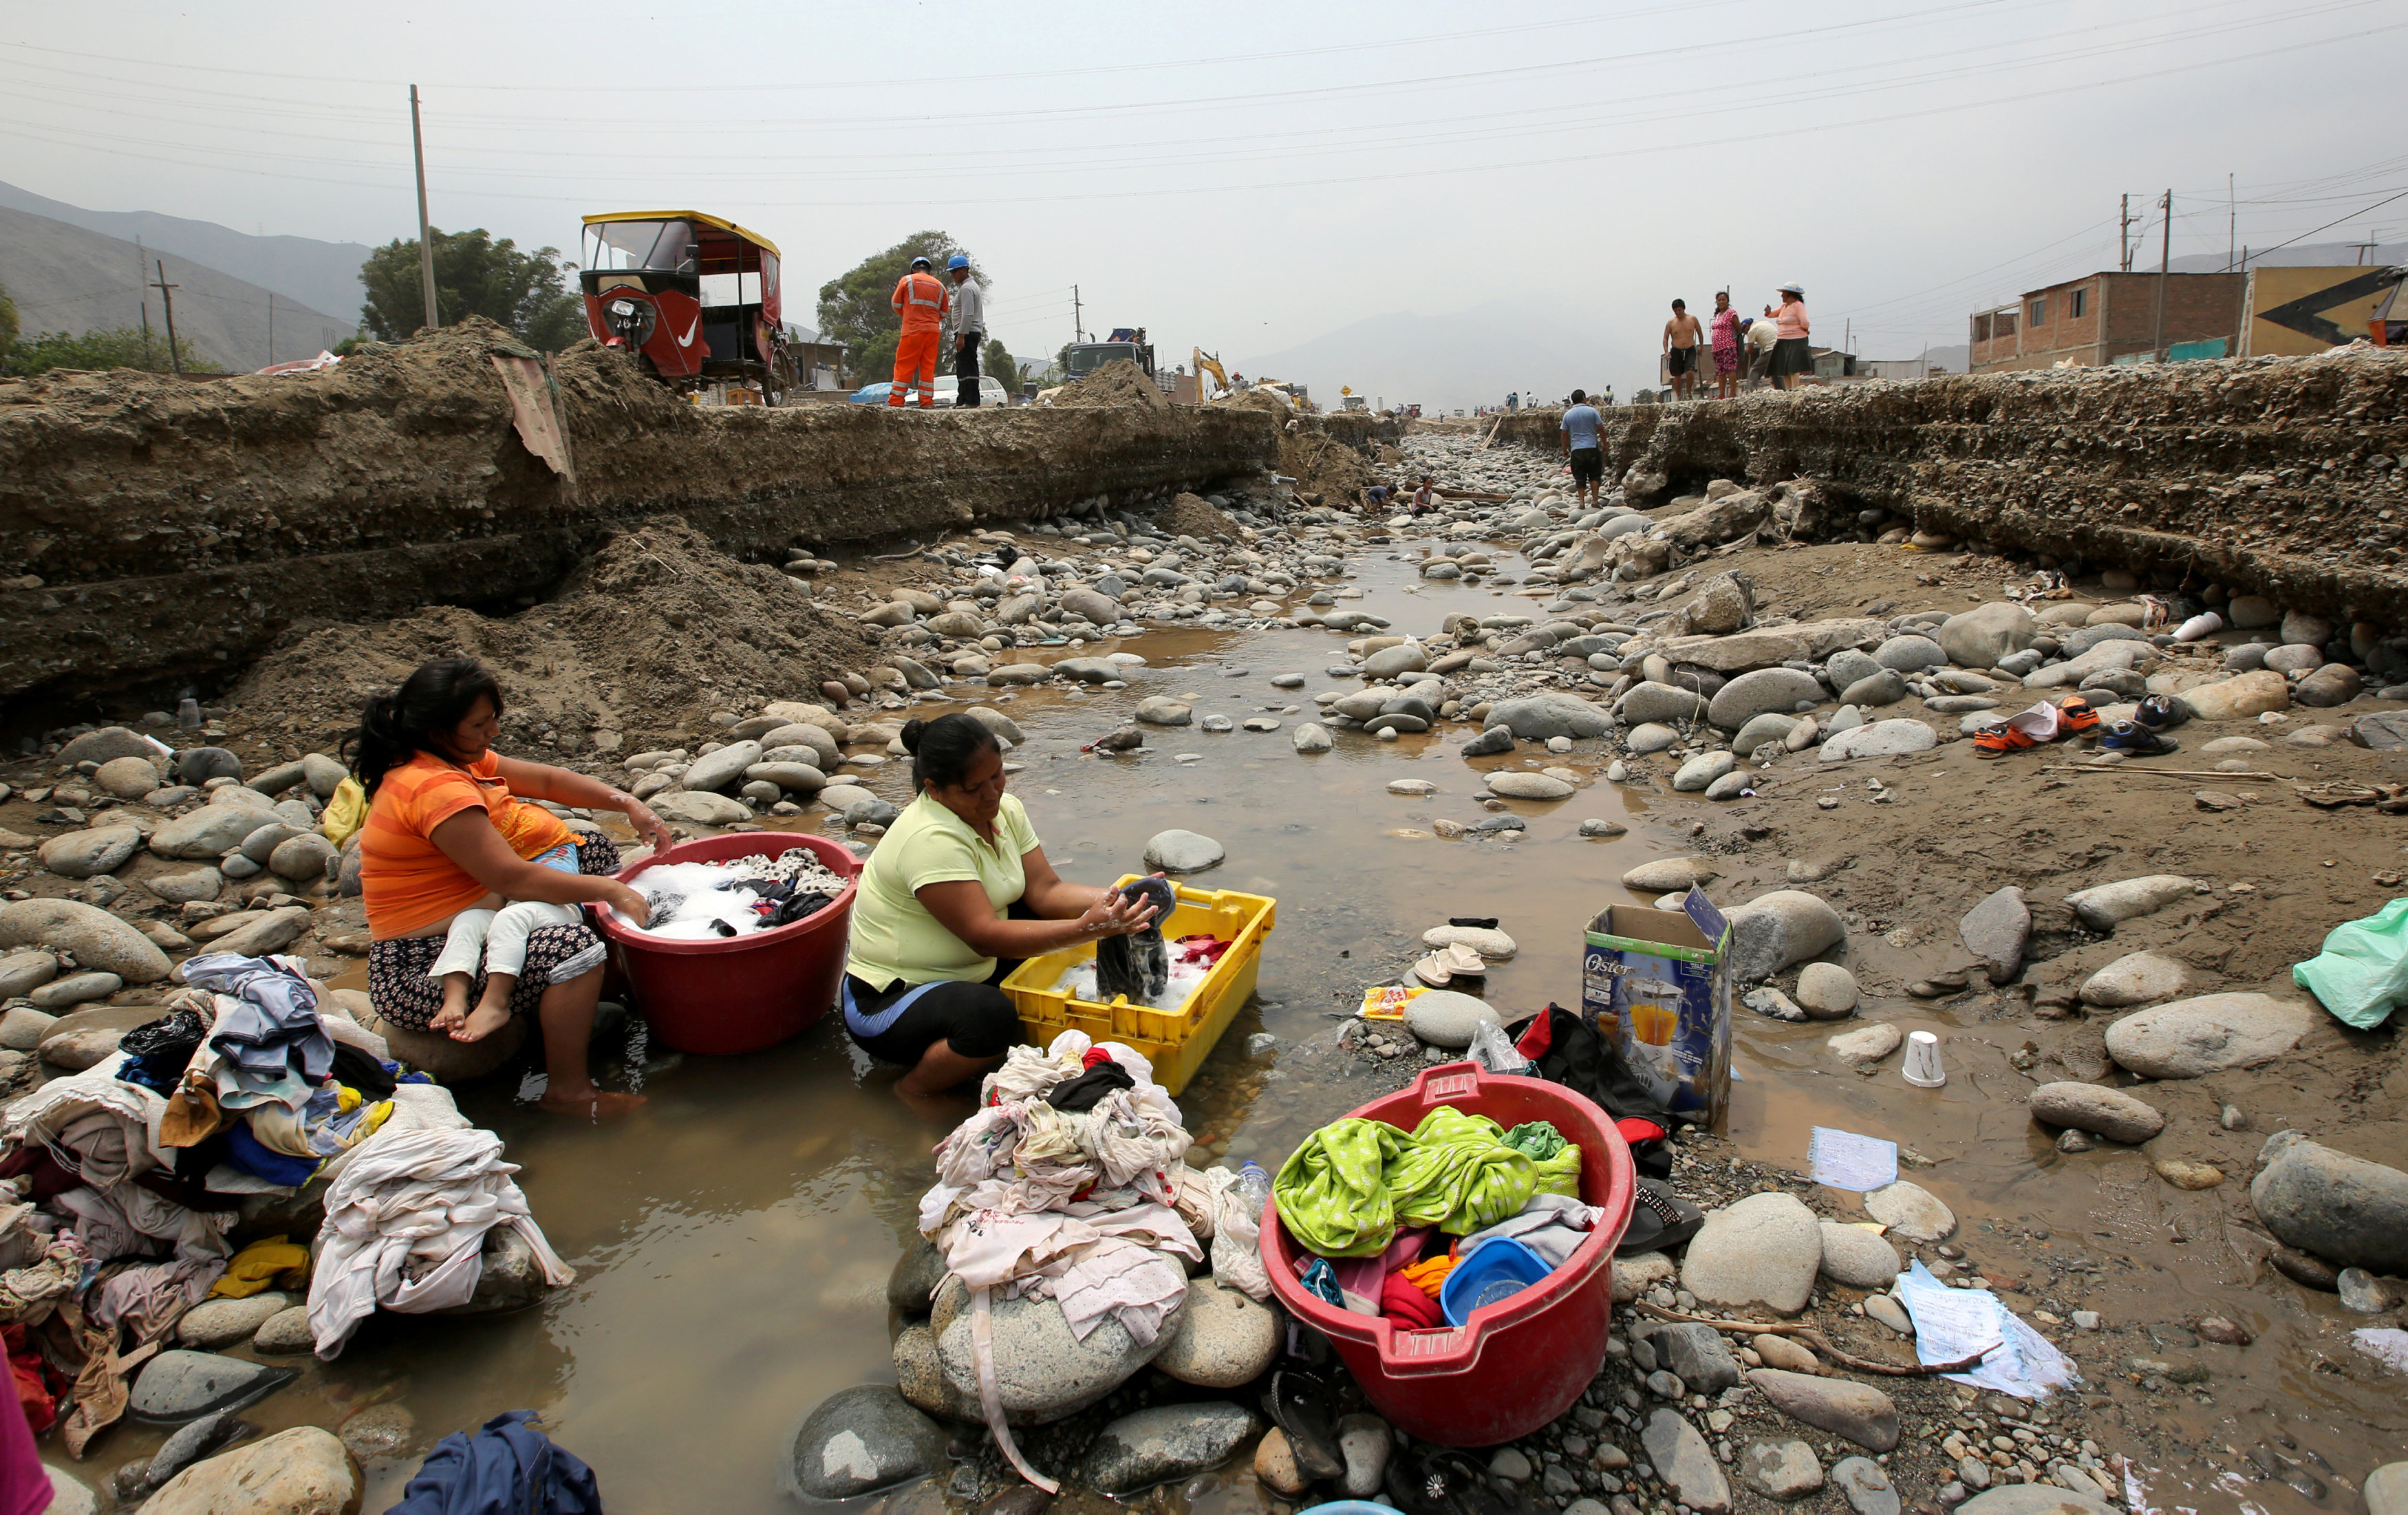 Residents do the laundry at a flooded Ramiro Priale highway, after rivers breached their banks due to torrential rains, causing flooding and widespread destruction in Huachipa, Lima, Peru, March 20, 2017. REUTERS/Mariana Bazo